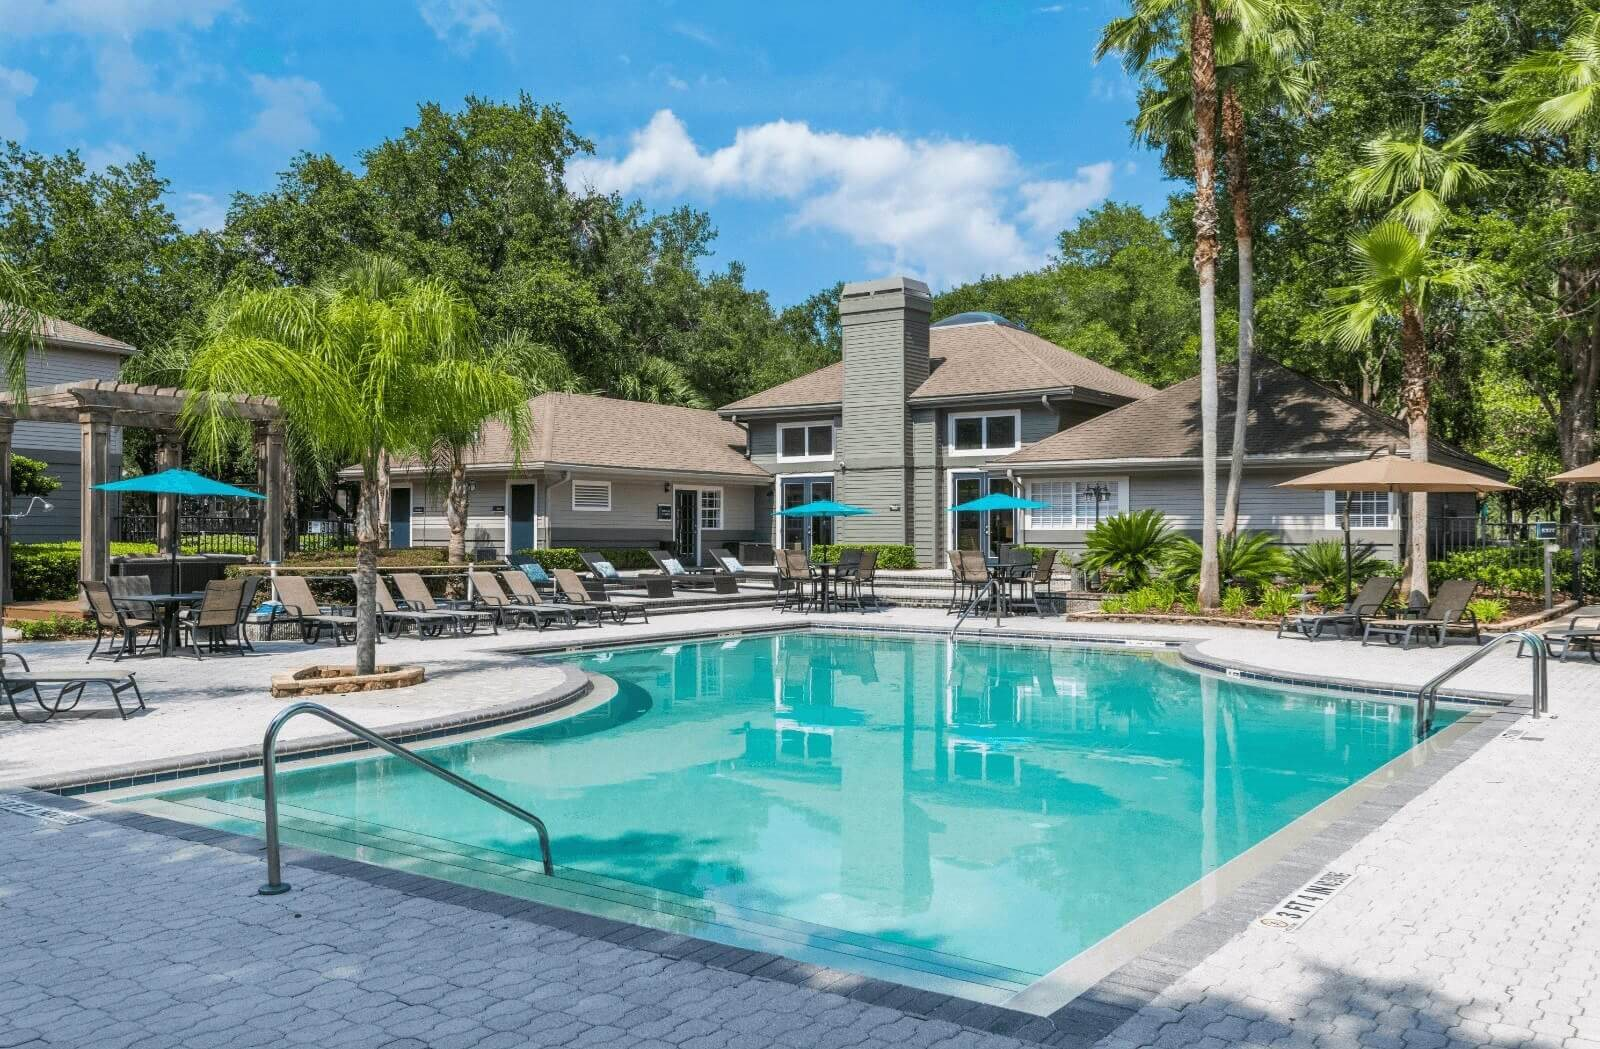 Swimming Pool With Sparkling Water at Bay Club Apartments, Florida